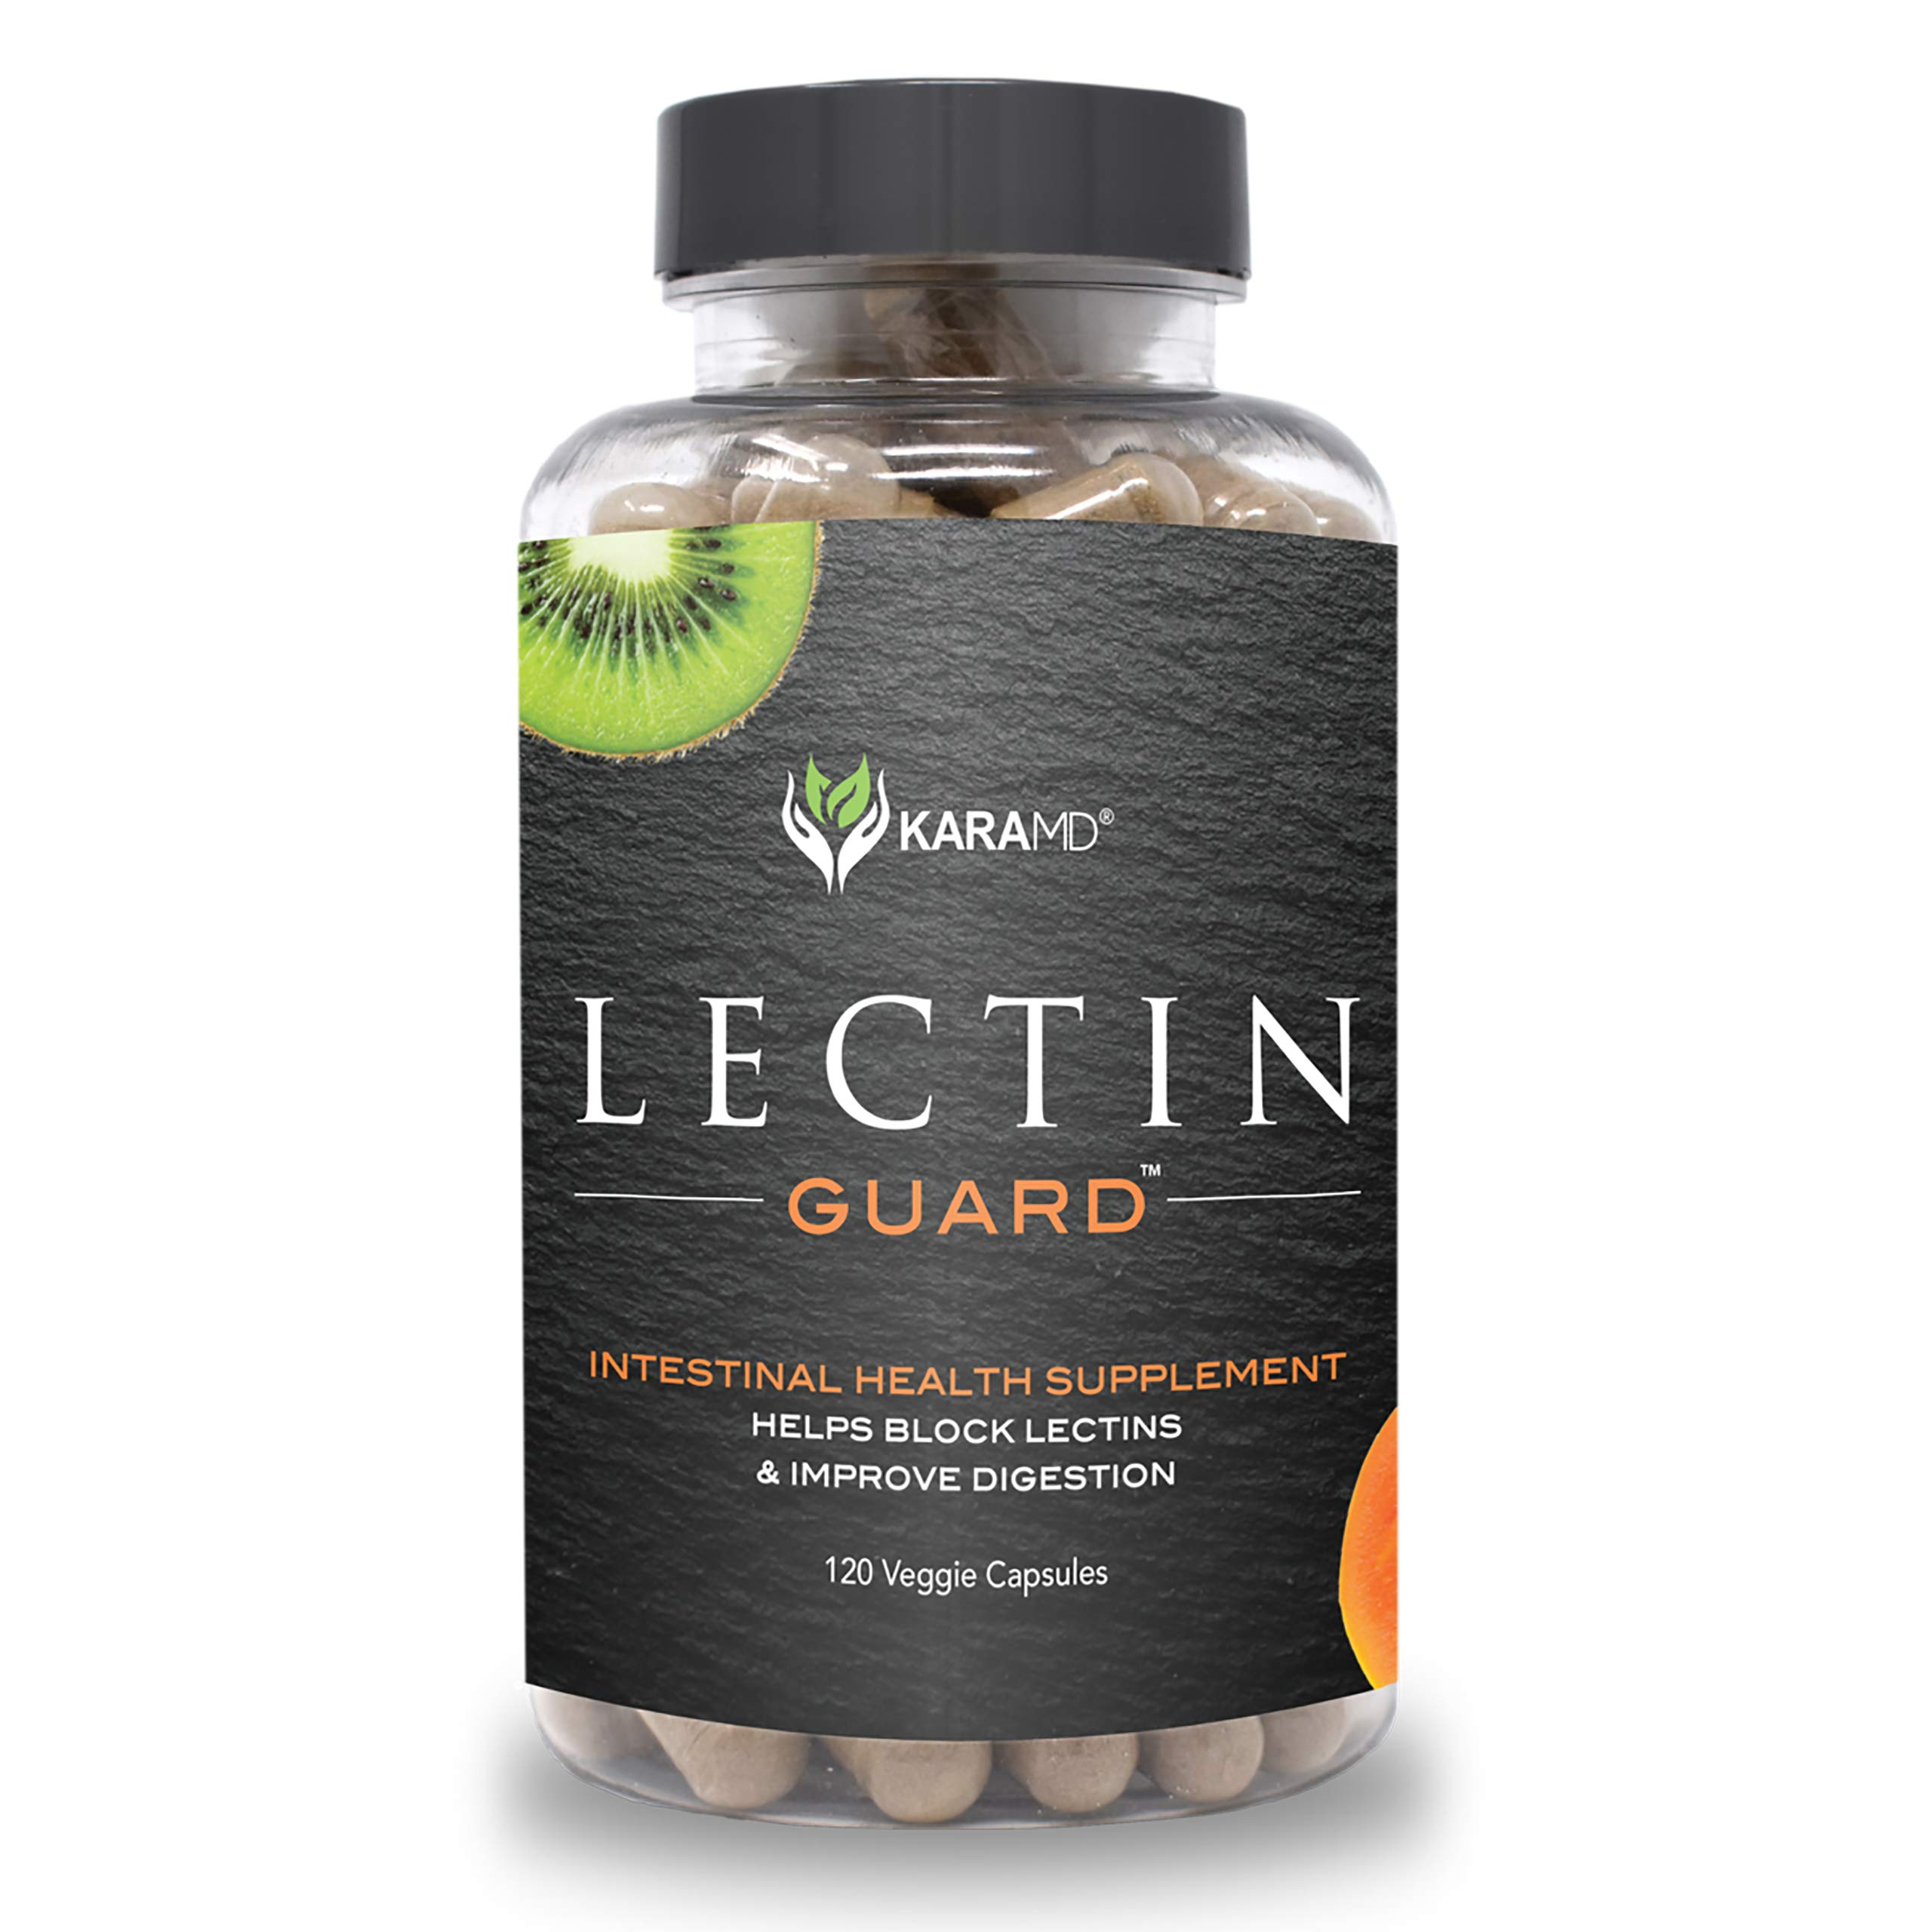 KaraMD Lectin Guard | Doctor Formulated Natural & Concentrated Lectin Blocker Digestive Blend Supplement | Complete Intestinal Health for Men & Women | Protect Against Harmful Lectins - 120 Capsules by KaraMD